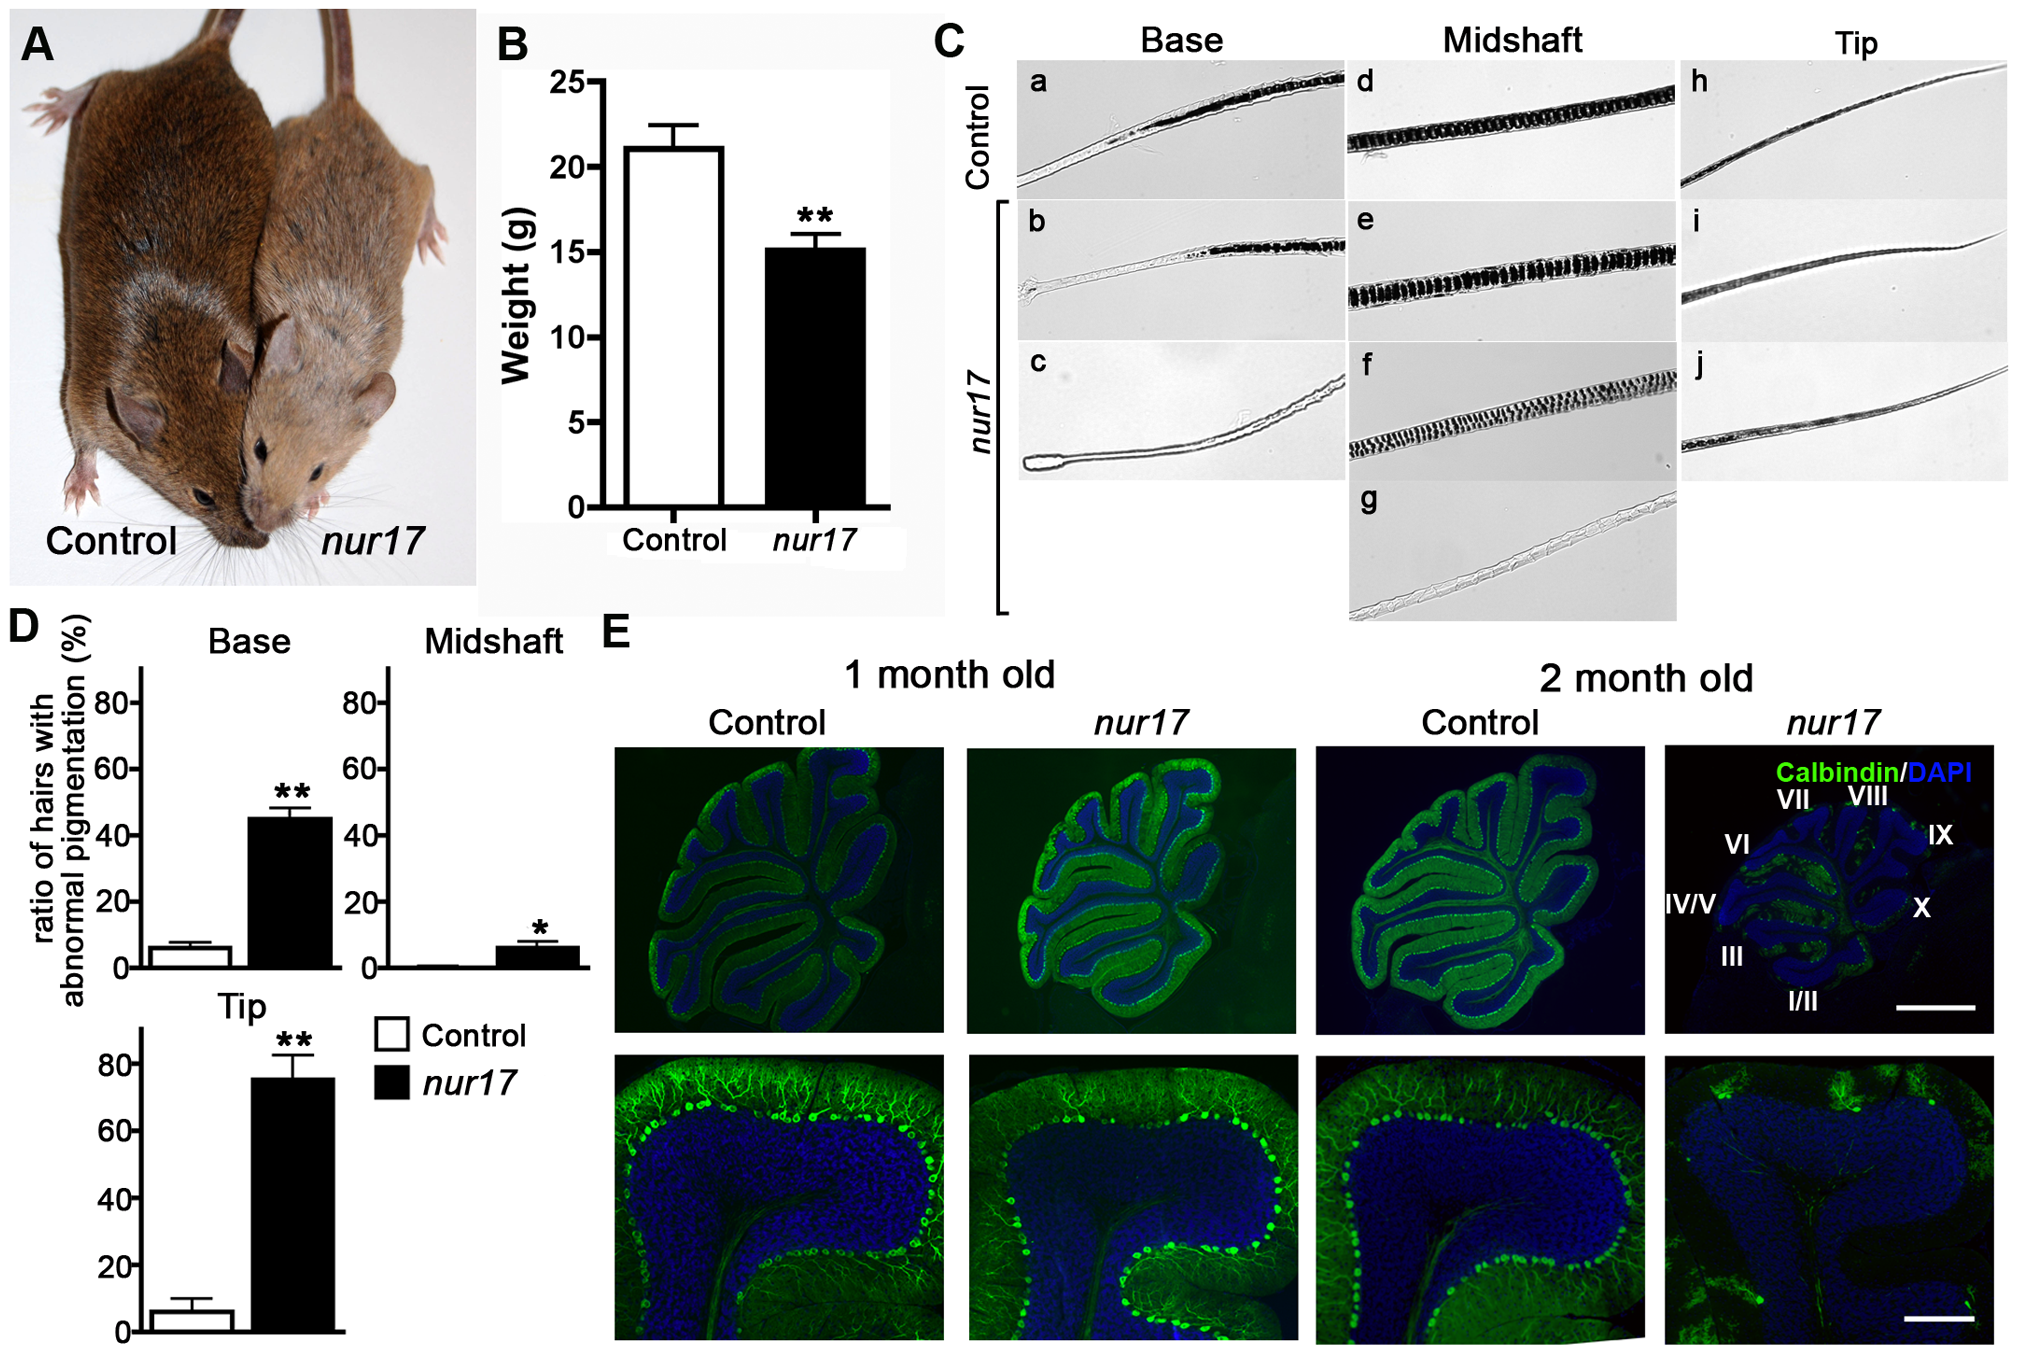 Coat color dilution and Purkinje cell degeneration in <i>nur17</i> mice.